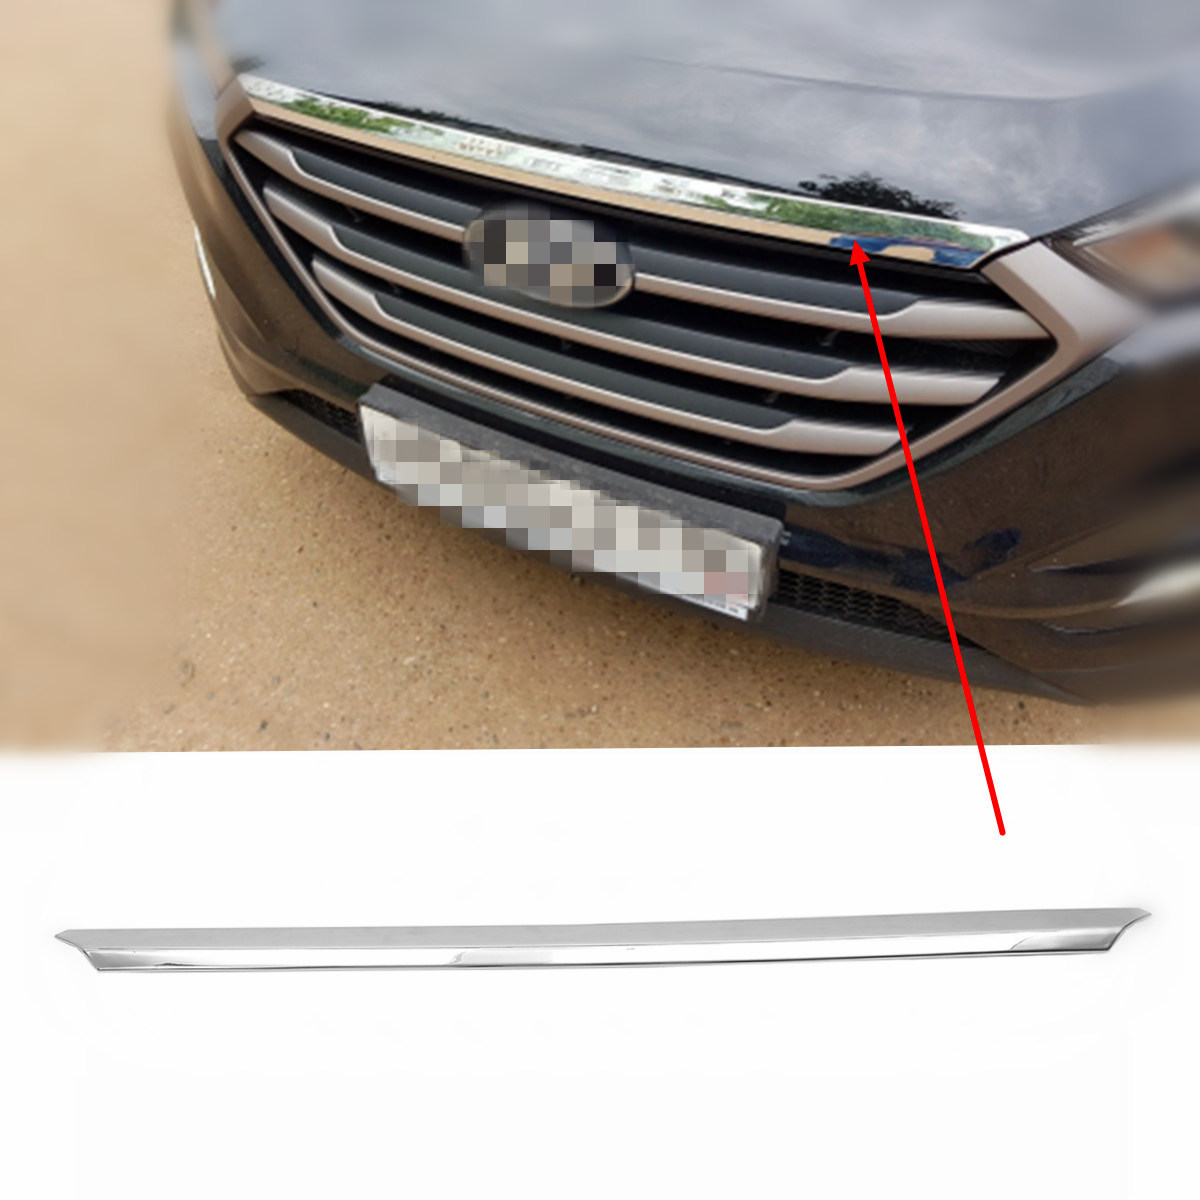 цена на Car-Styling Accessories ABS Front Chrome Grille Decoration Trim Cover for Hyundai Tucson 2015 2016 2018